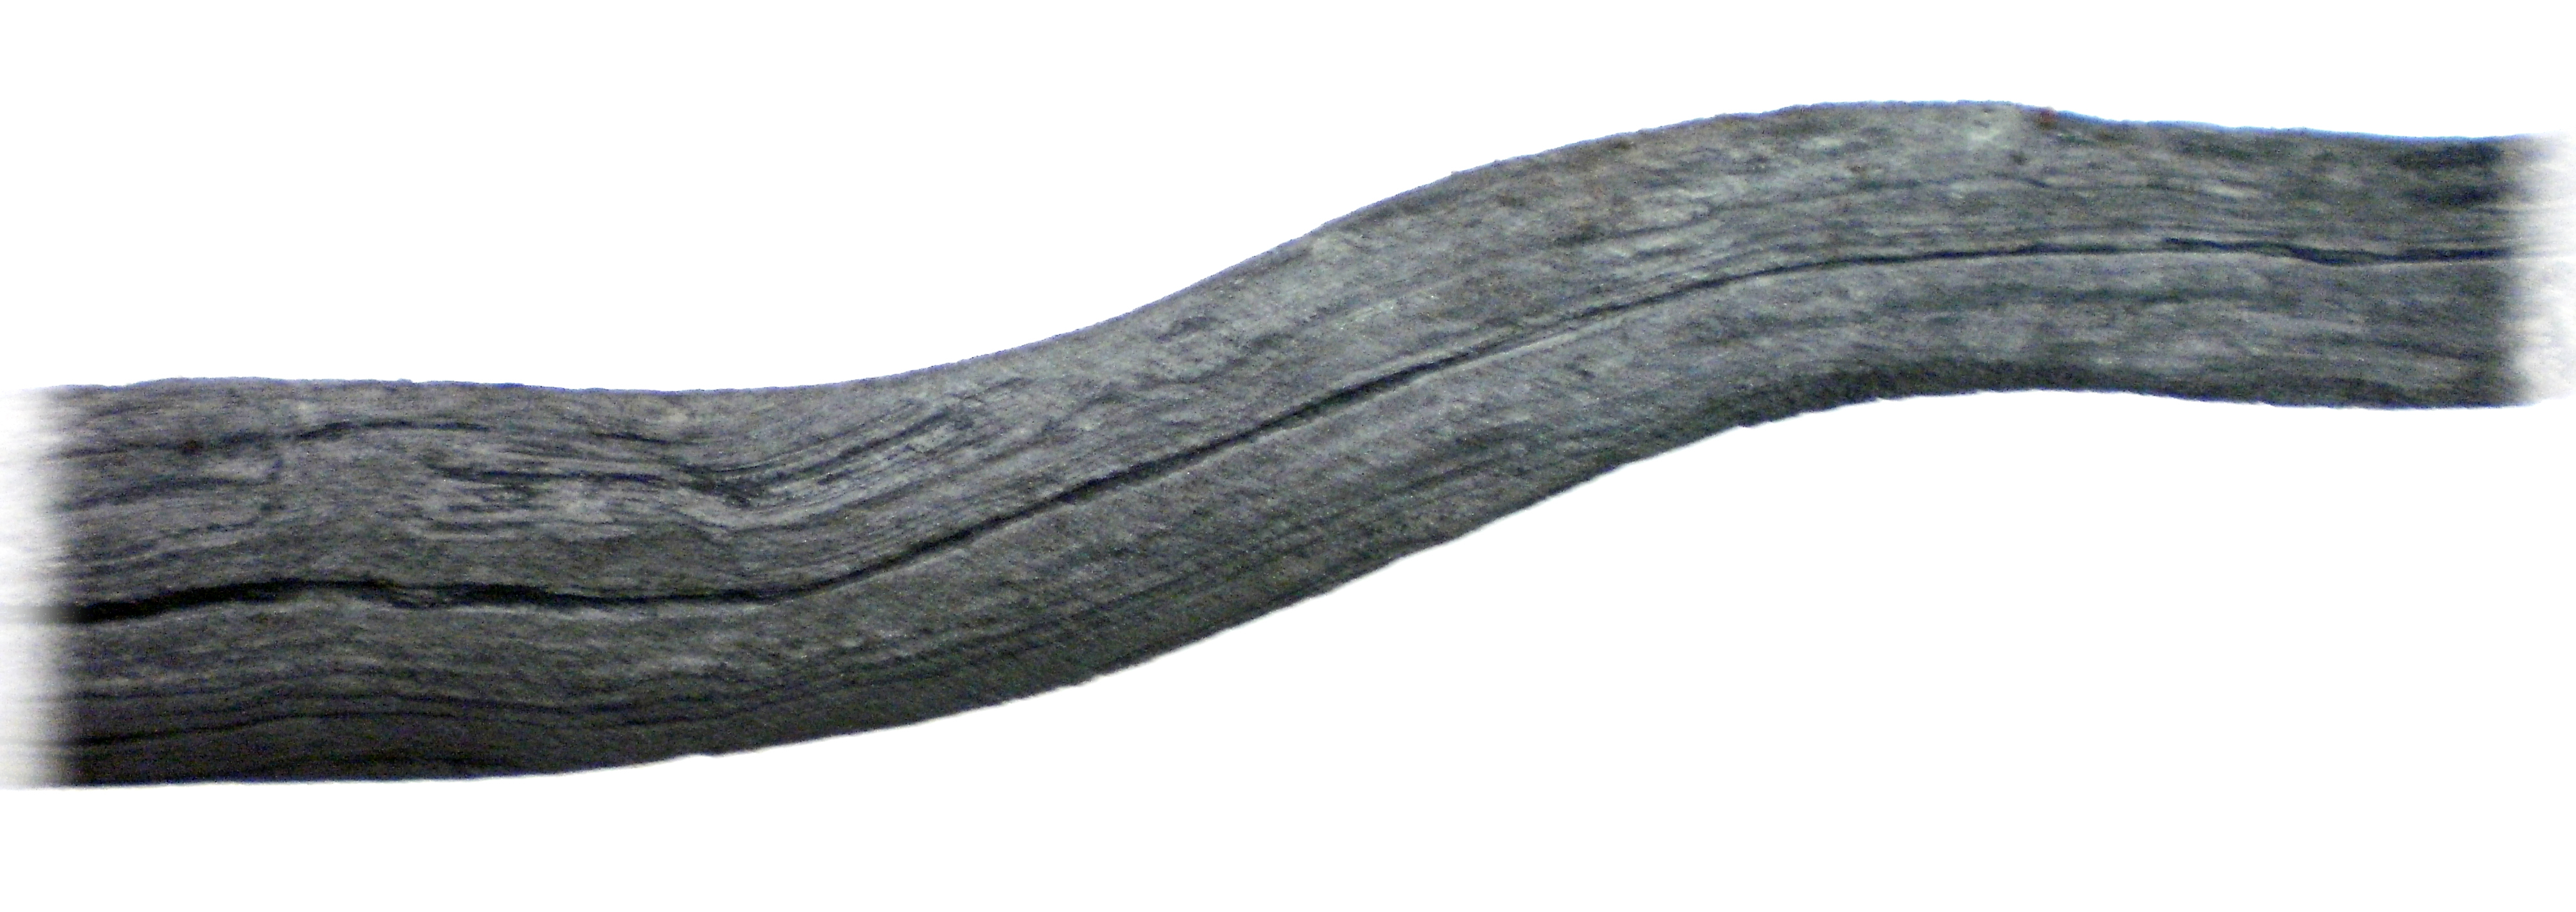 Keris Jaran Goyang Luk 7 from the Tangguh Pajang Era